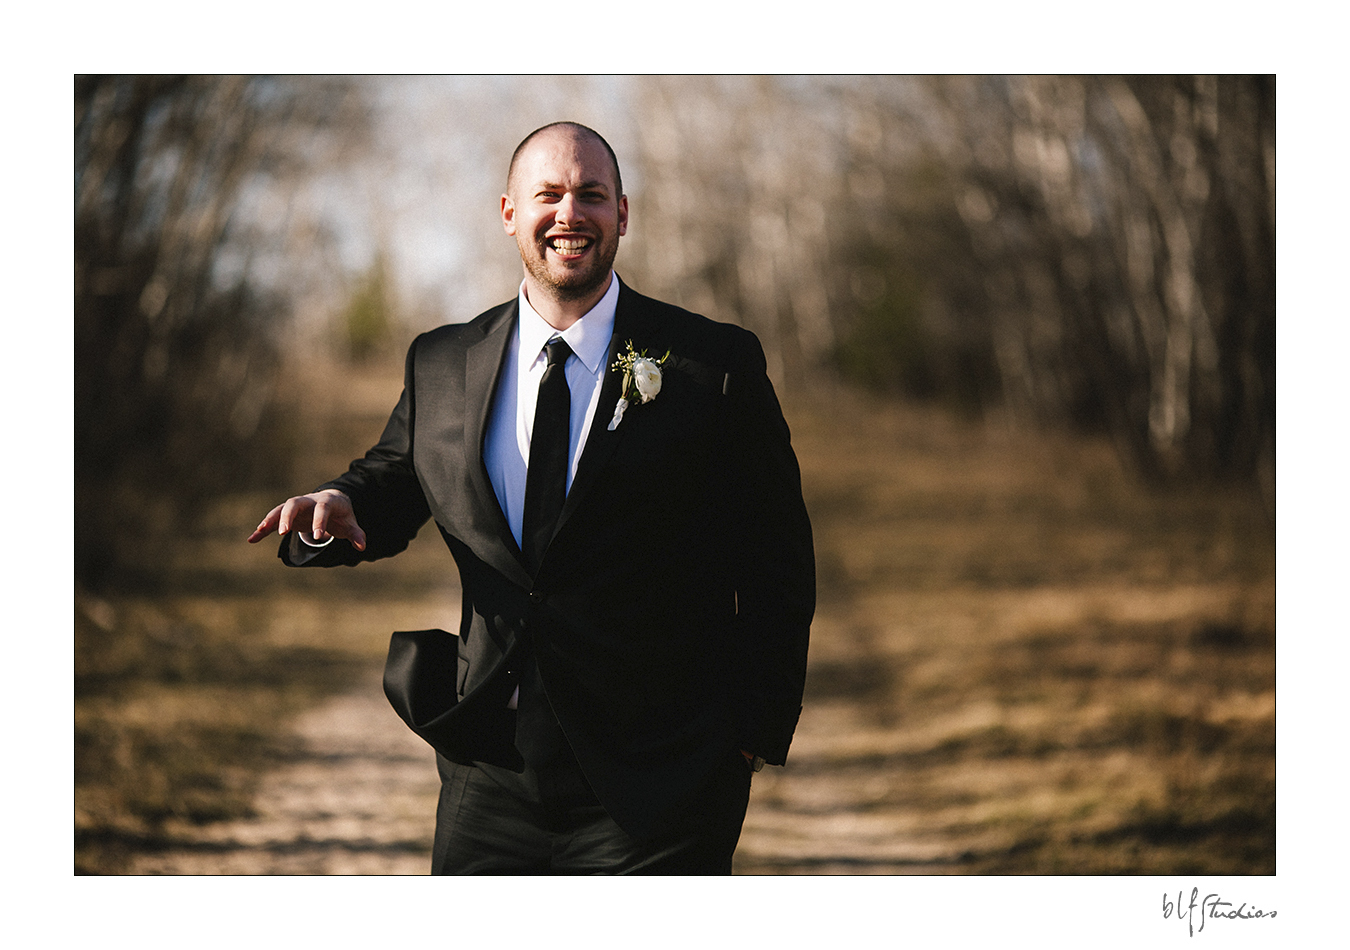 0025rimma-tyler--blfStudios-pineridgehollow-wedding.jpg